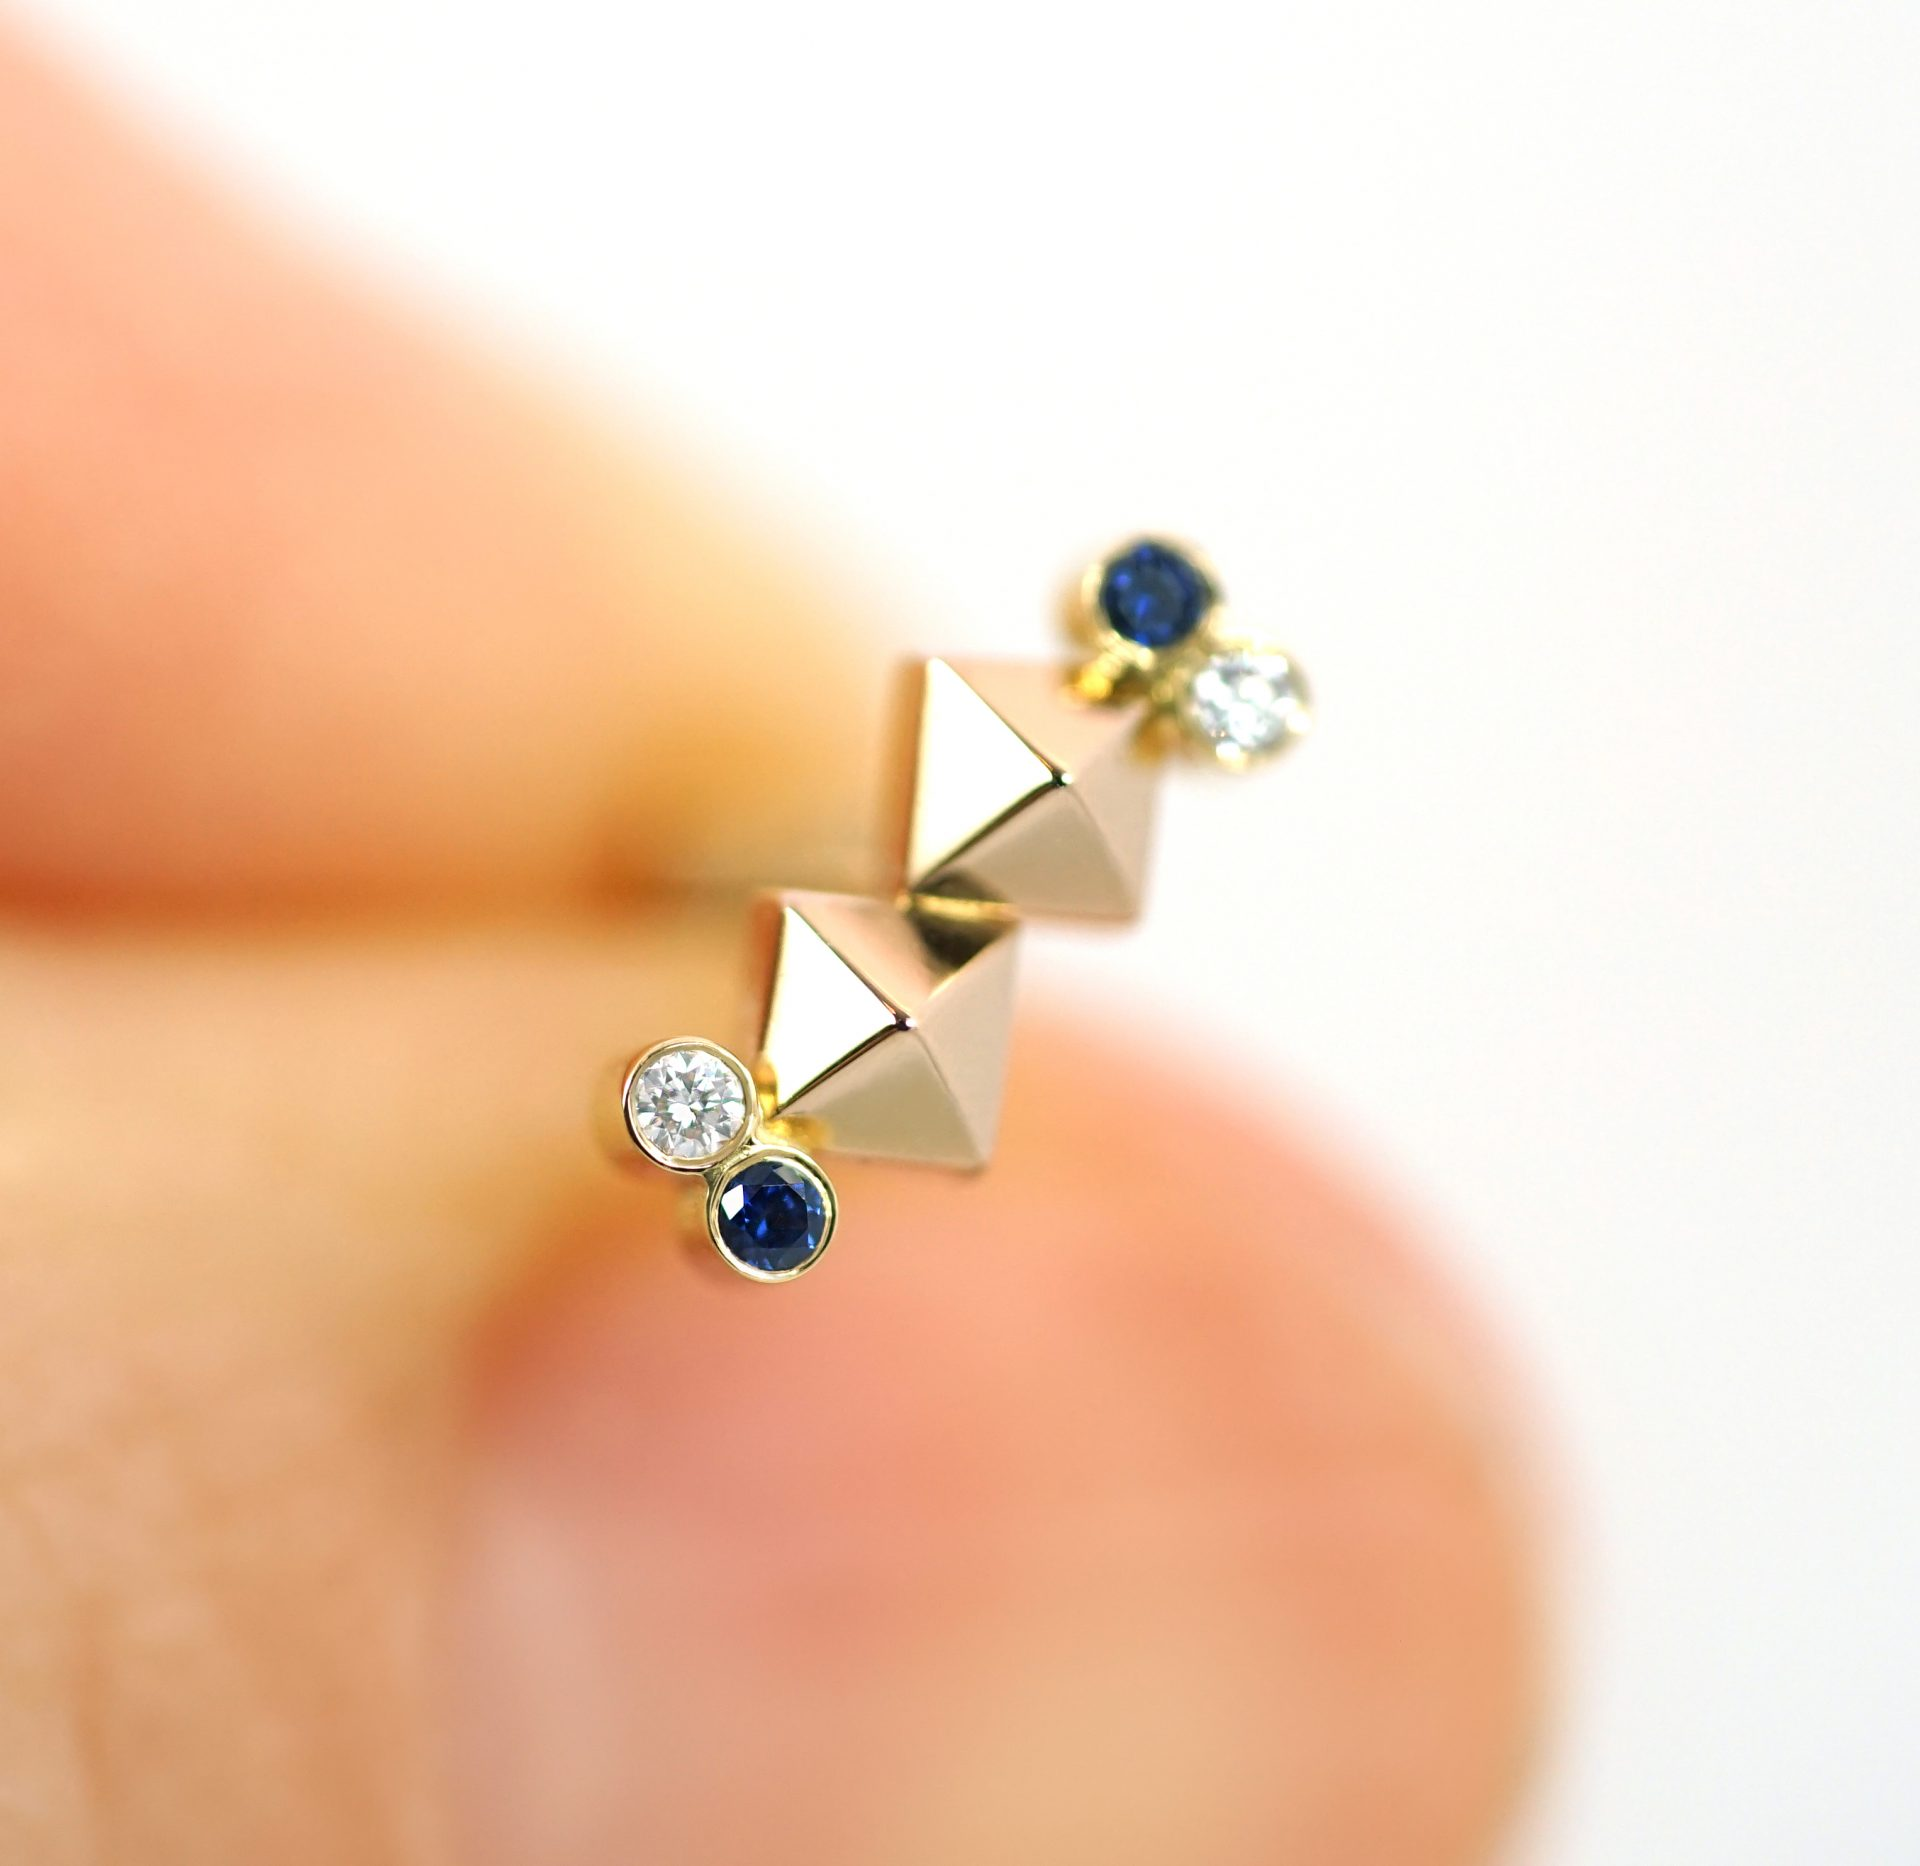 march-jewellery-birthday-gift-for-her-zodiac-astrology-pisces-sign-lena-cohen-piercing-earrings-uk